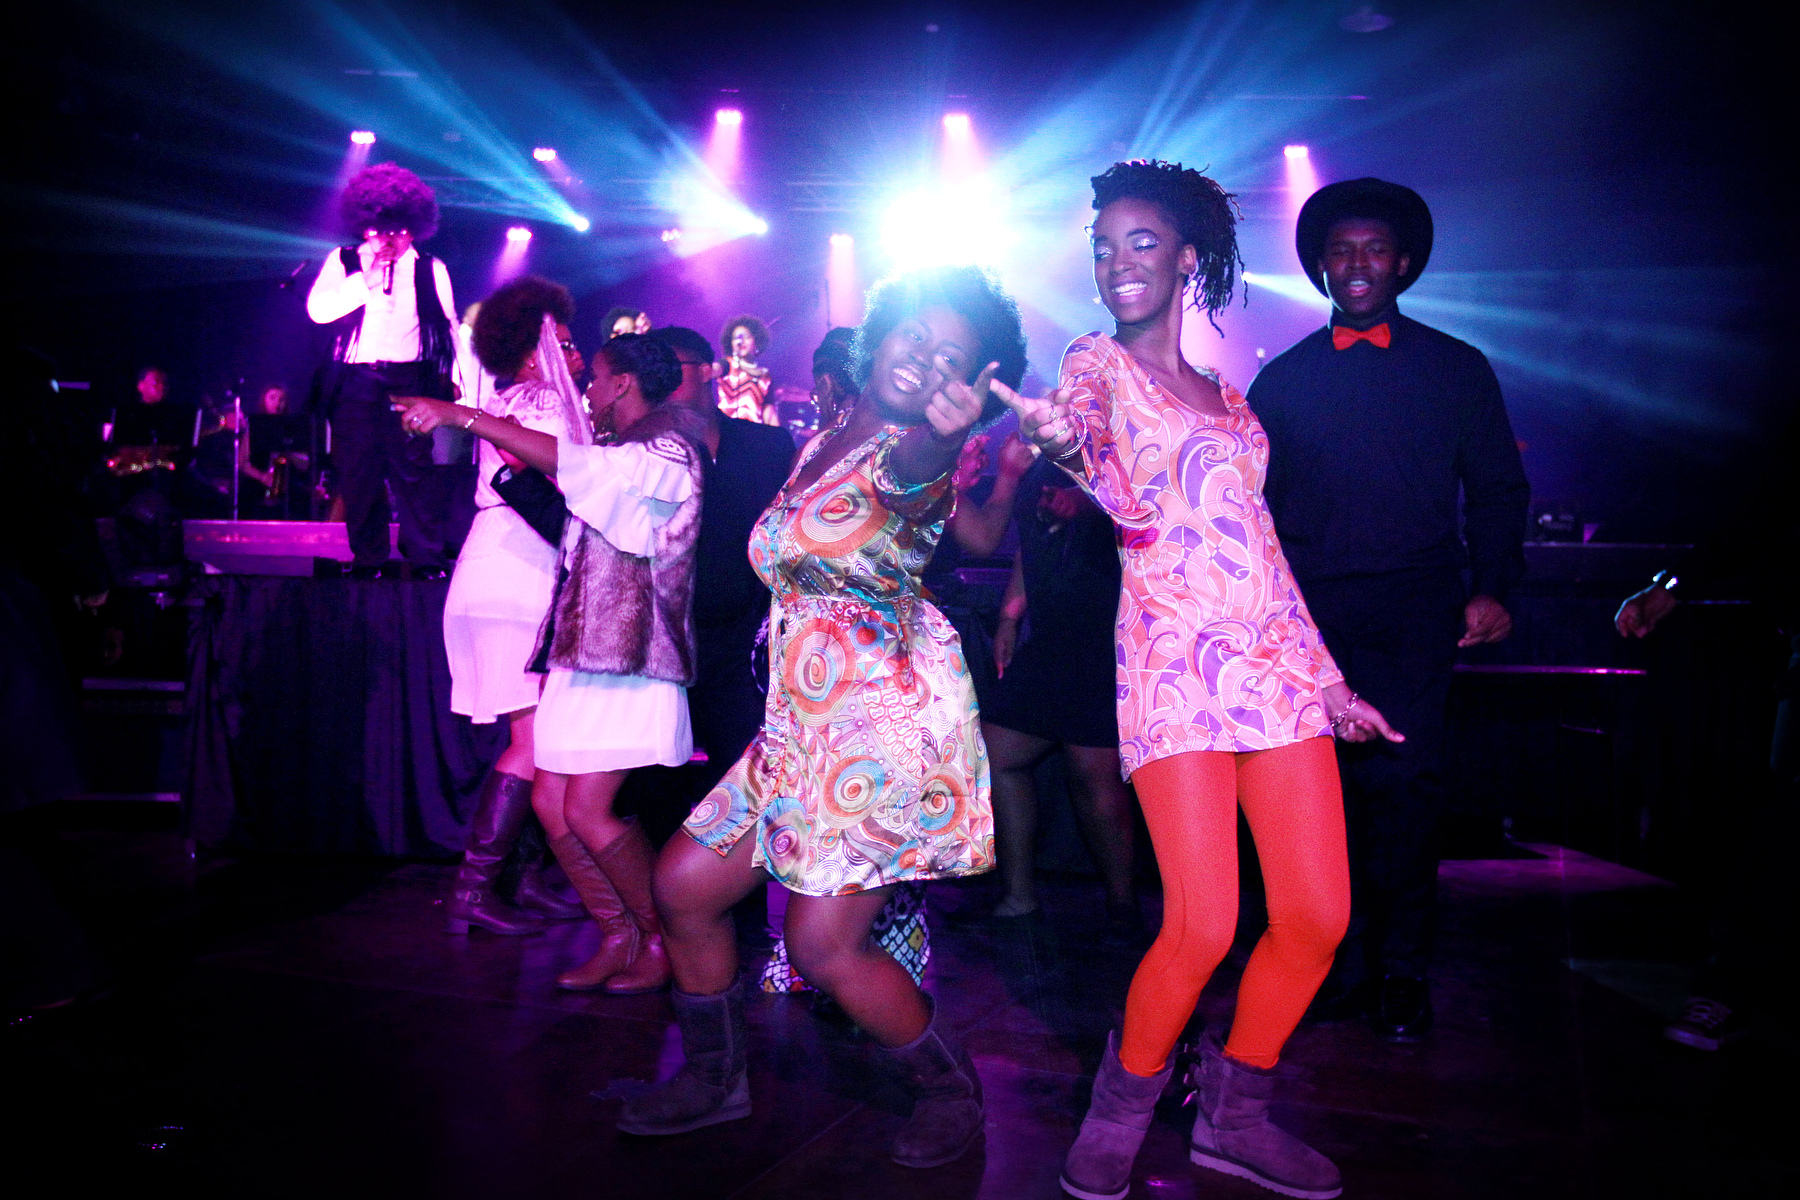 February 25, 2016 - Chantalia Wray, 14, (left) and Xia Gilbsy, 15, dance with other members of the Stax Music Academy during a performance of {quote}Peace, Love and Soulsville!: Memphis to Motown{quote} at Minglewood Hall in celebration of Black History Month on Thursday. Roughly 1000 students from area school attended the show that highlighted the history and hits of Motown and Stax. In addition to the free show for students, a public show was performed in the evening. The Stax Music Academy' will be holding auditions March 1-4. Visit staxmusicacademy.org for more information. (Mike Brown/The Commercial Appeal)